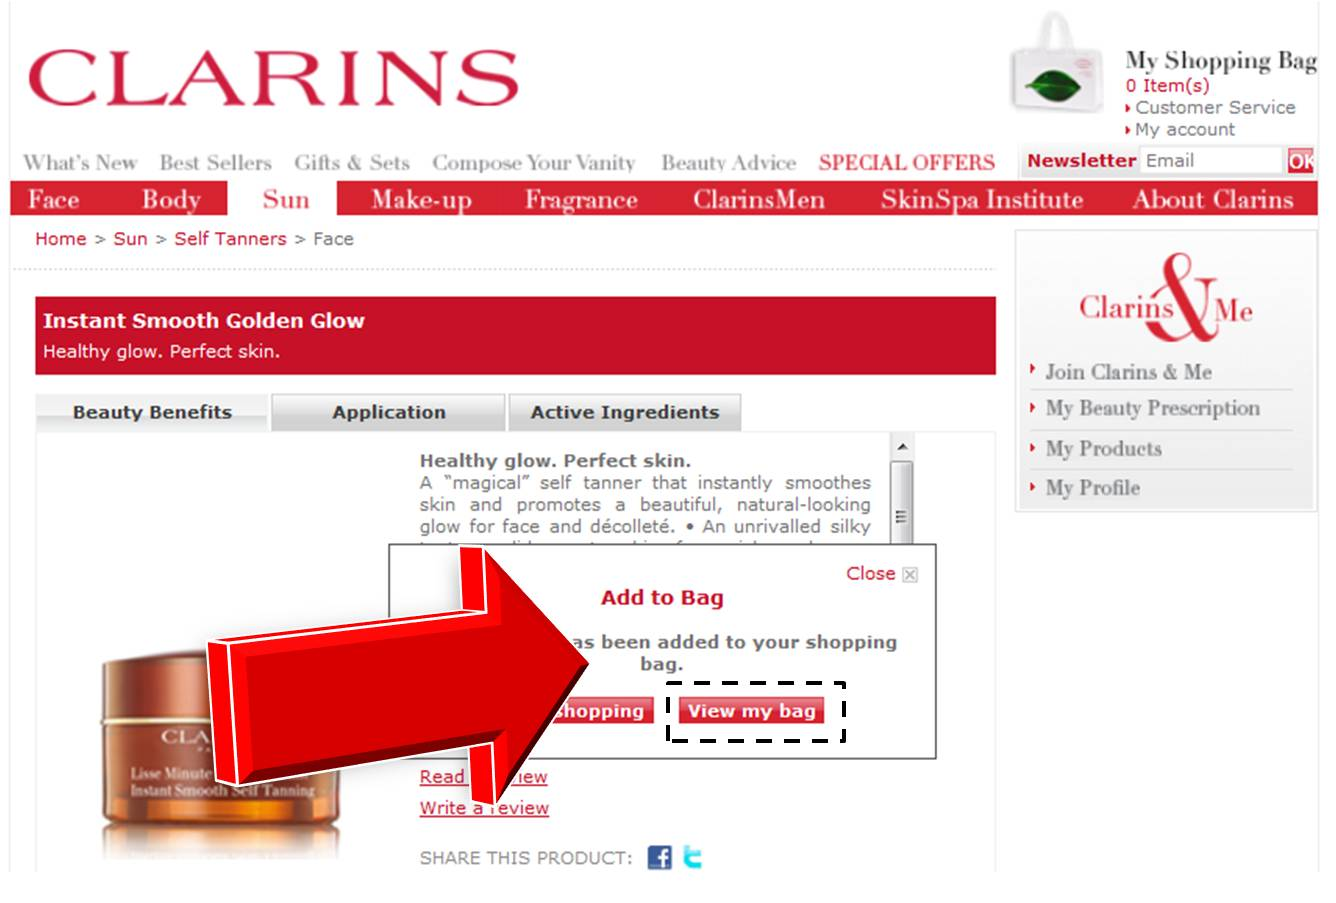 Never miss another coupon. Be the first to learn about new coupons and deals for popular brands like Clarins with the Coupon Sherpa weekly newsletters.